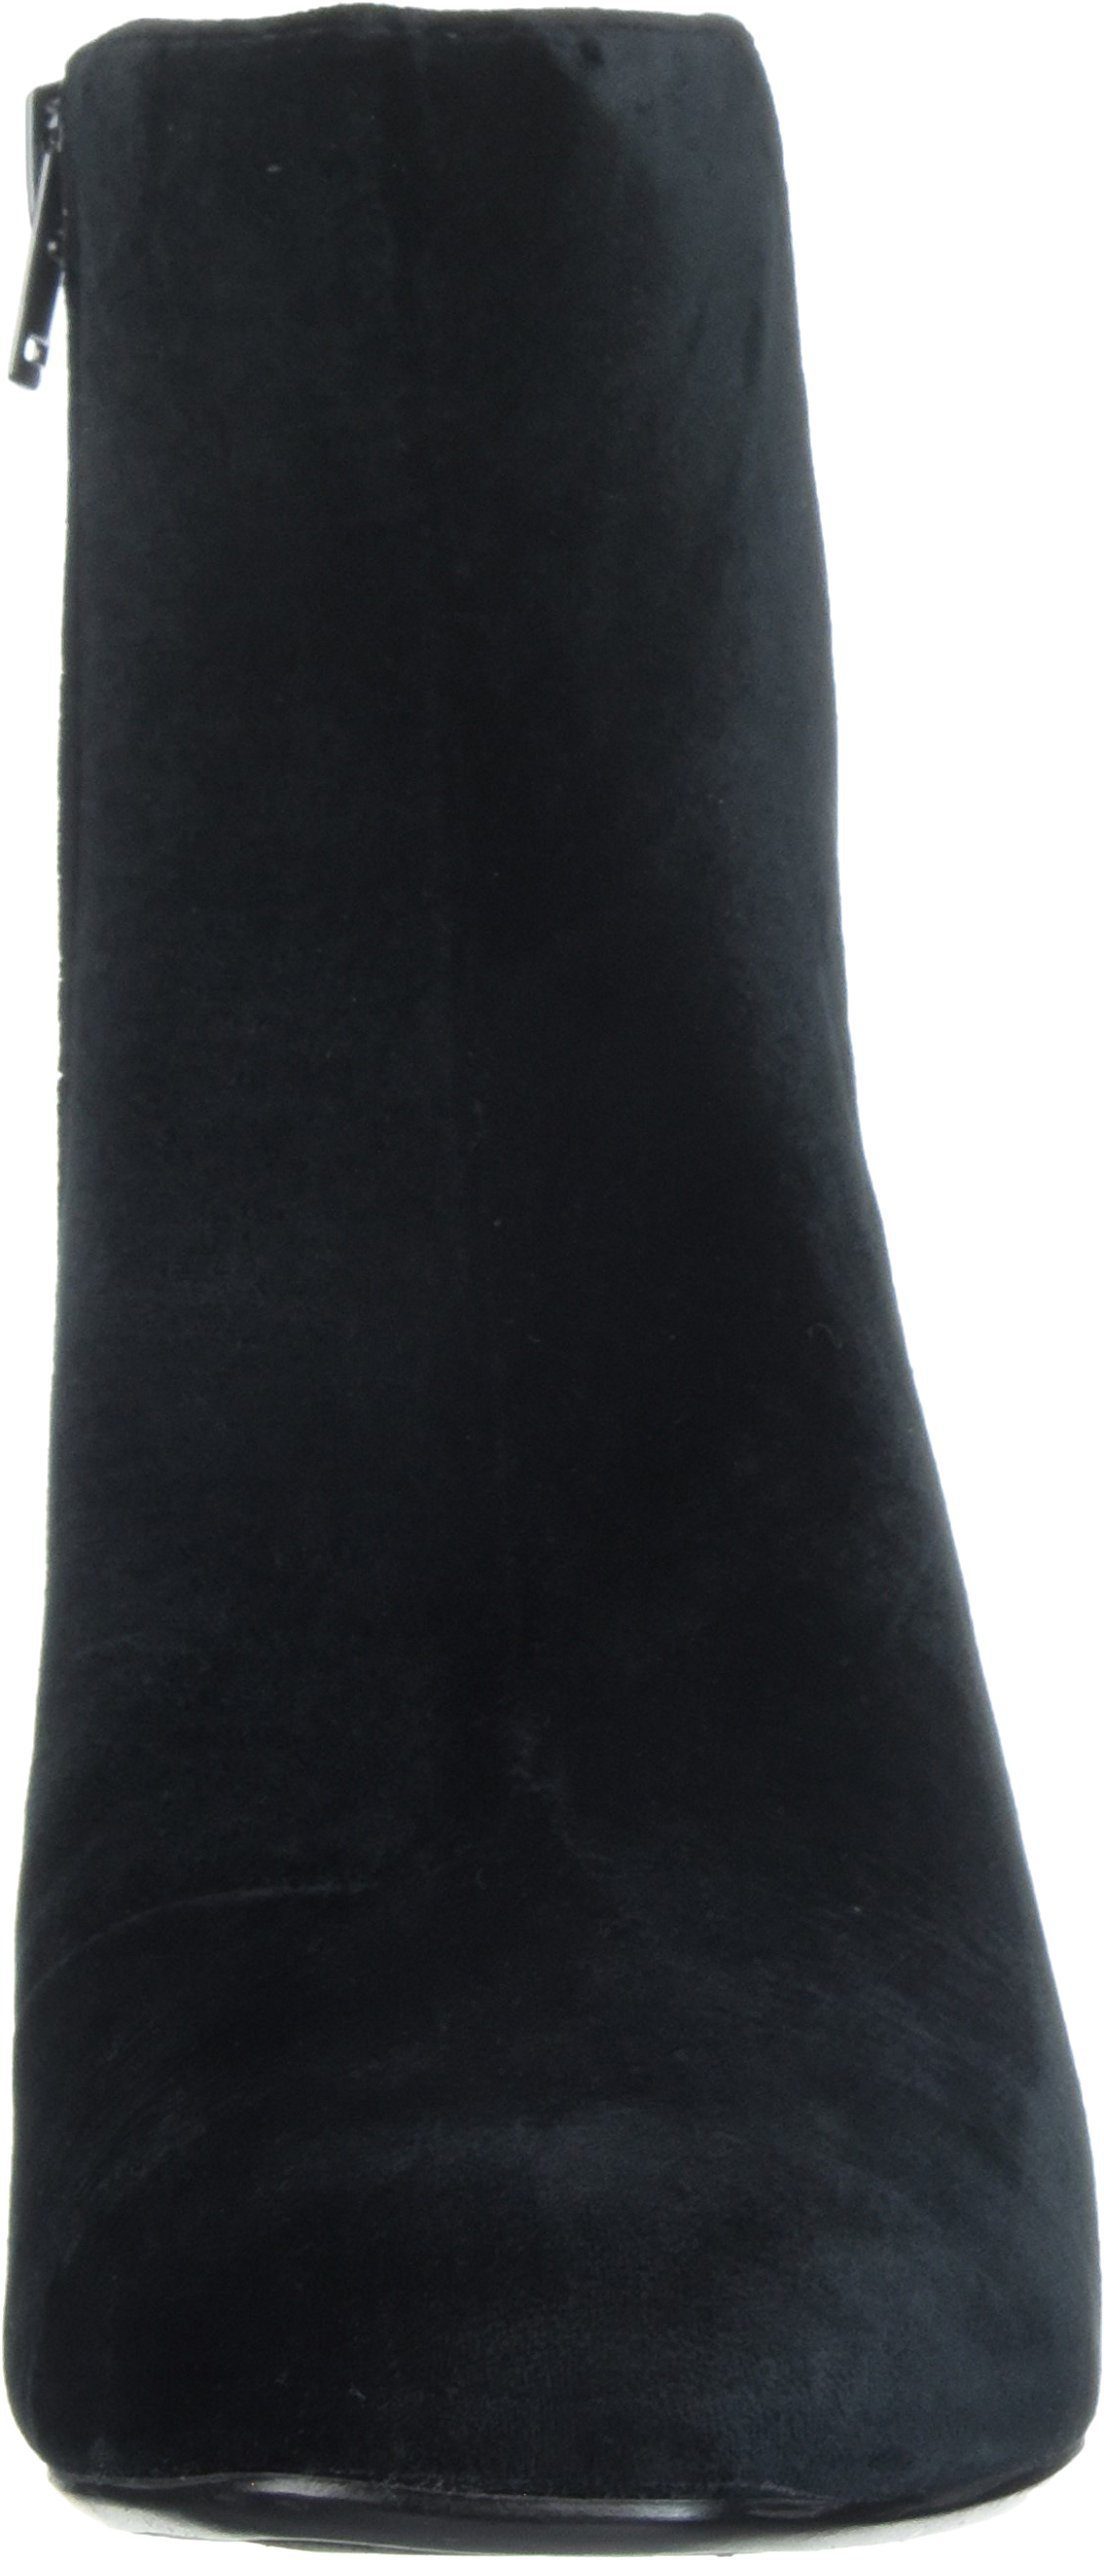 Naturalizer Women's Westing Boot, Black, 6.5 M US by Naturalizer (Image #4)